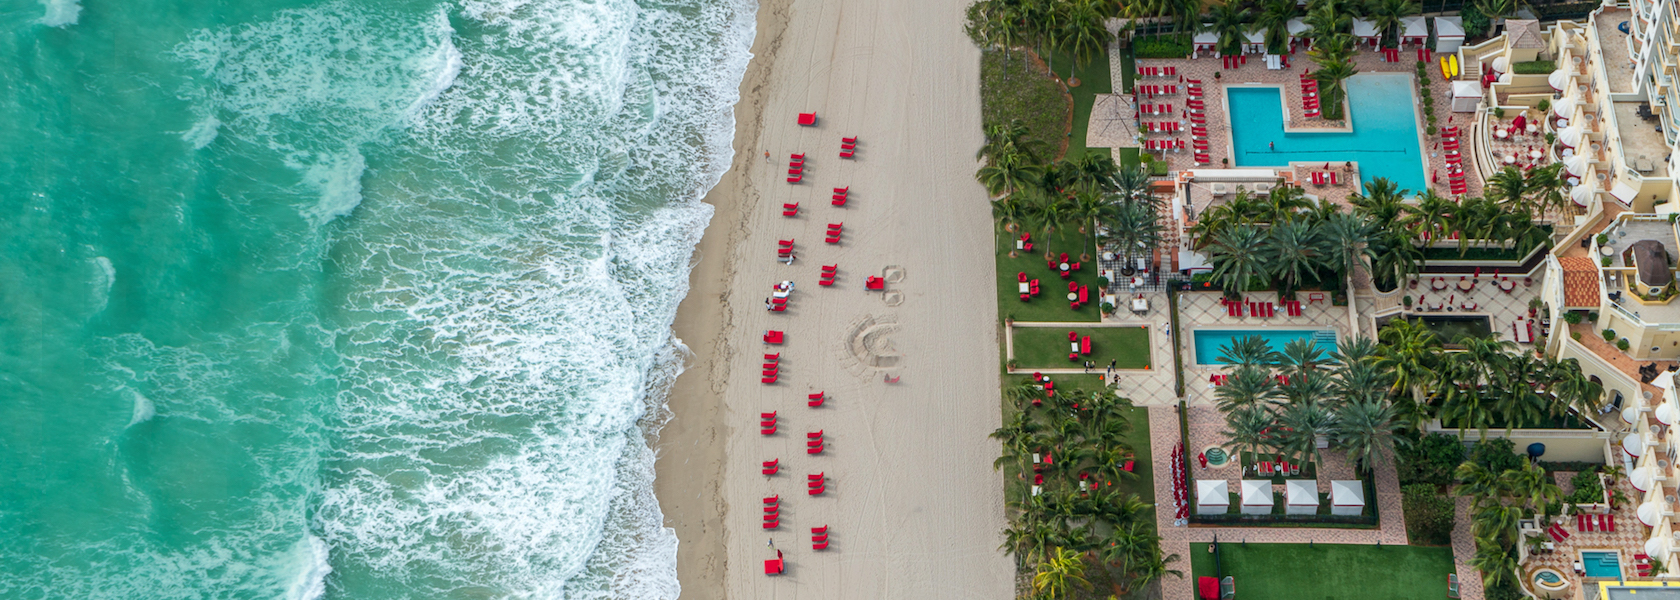 Aerial view looking directly down at turquoise oceans, red lounge chairs and Acqualina lawn.